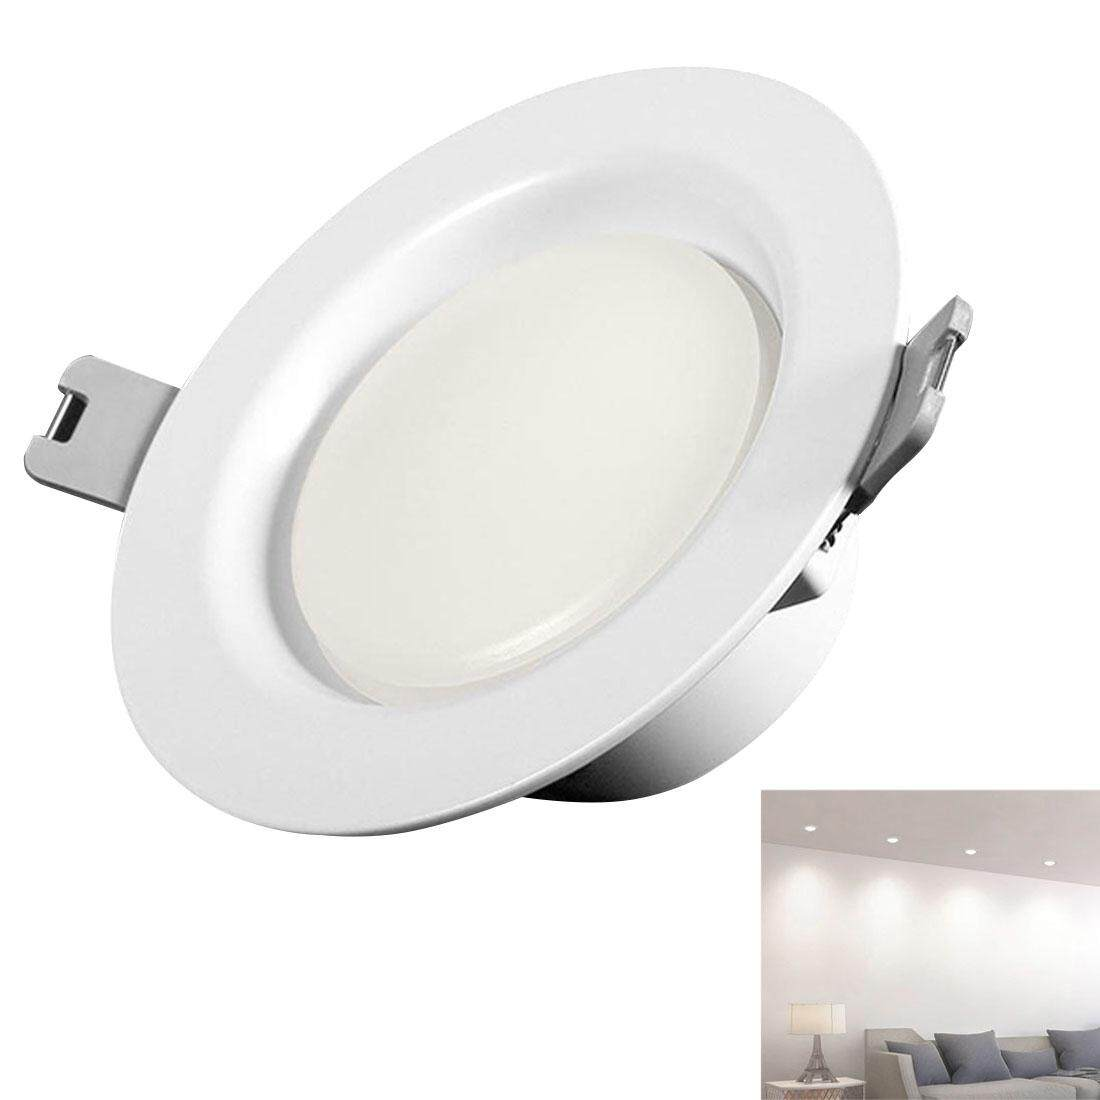 Xiaomi Mijia Yeelight 5W Warm White Light Round LED Down Light, 400 LM 4000K LED Ceiling Light, Cutout Size: 9.5-10cm, AC 220V